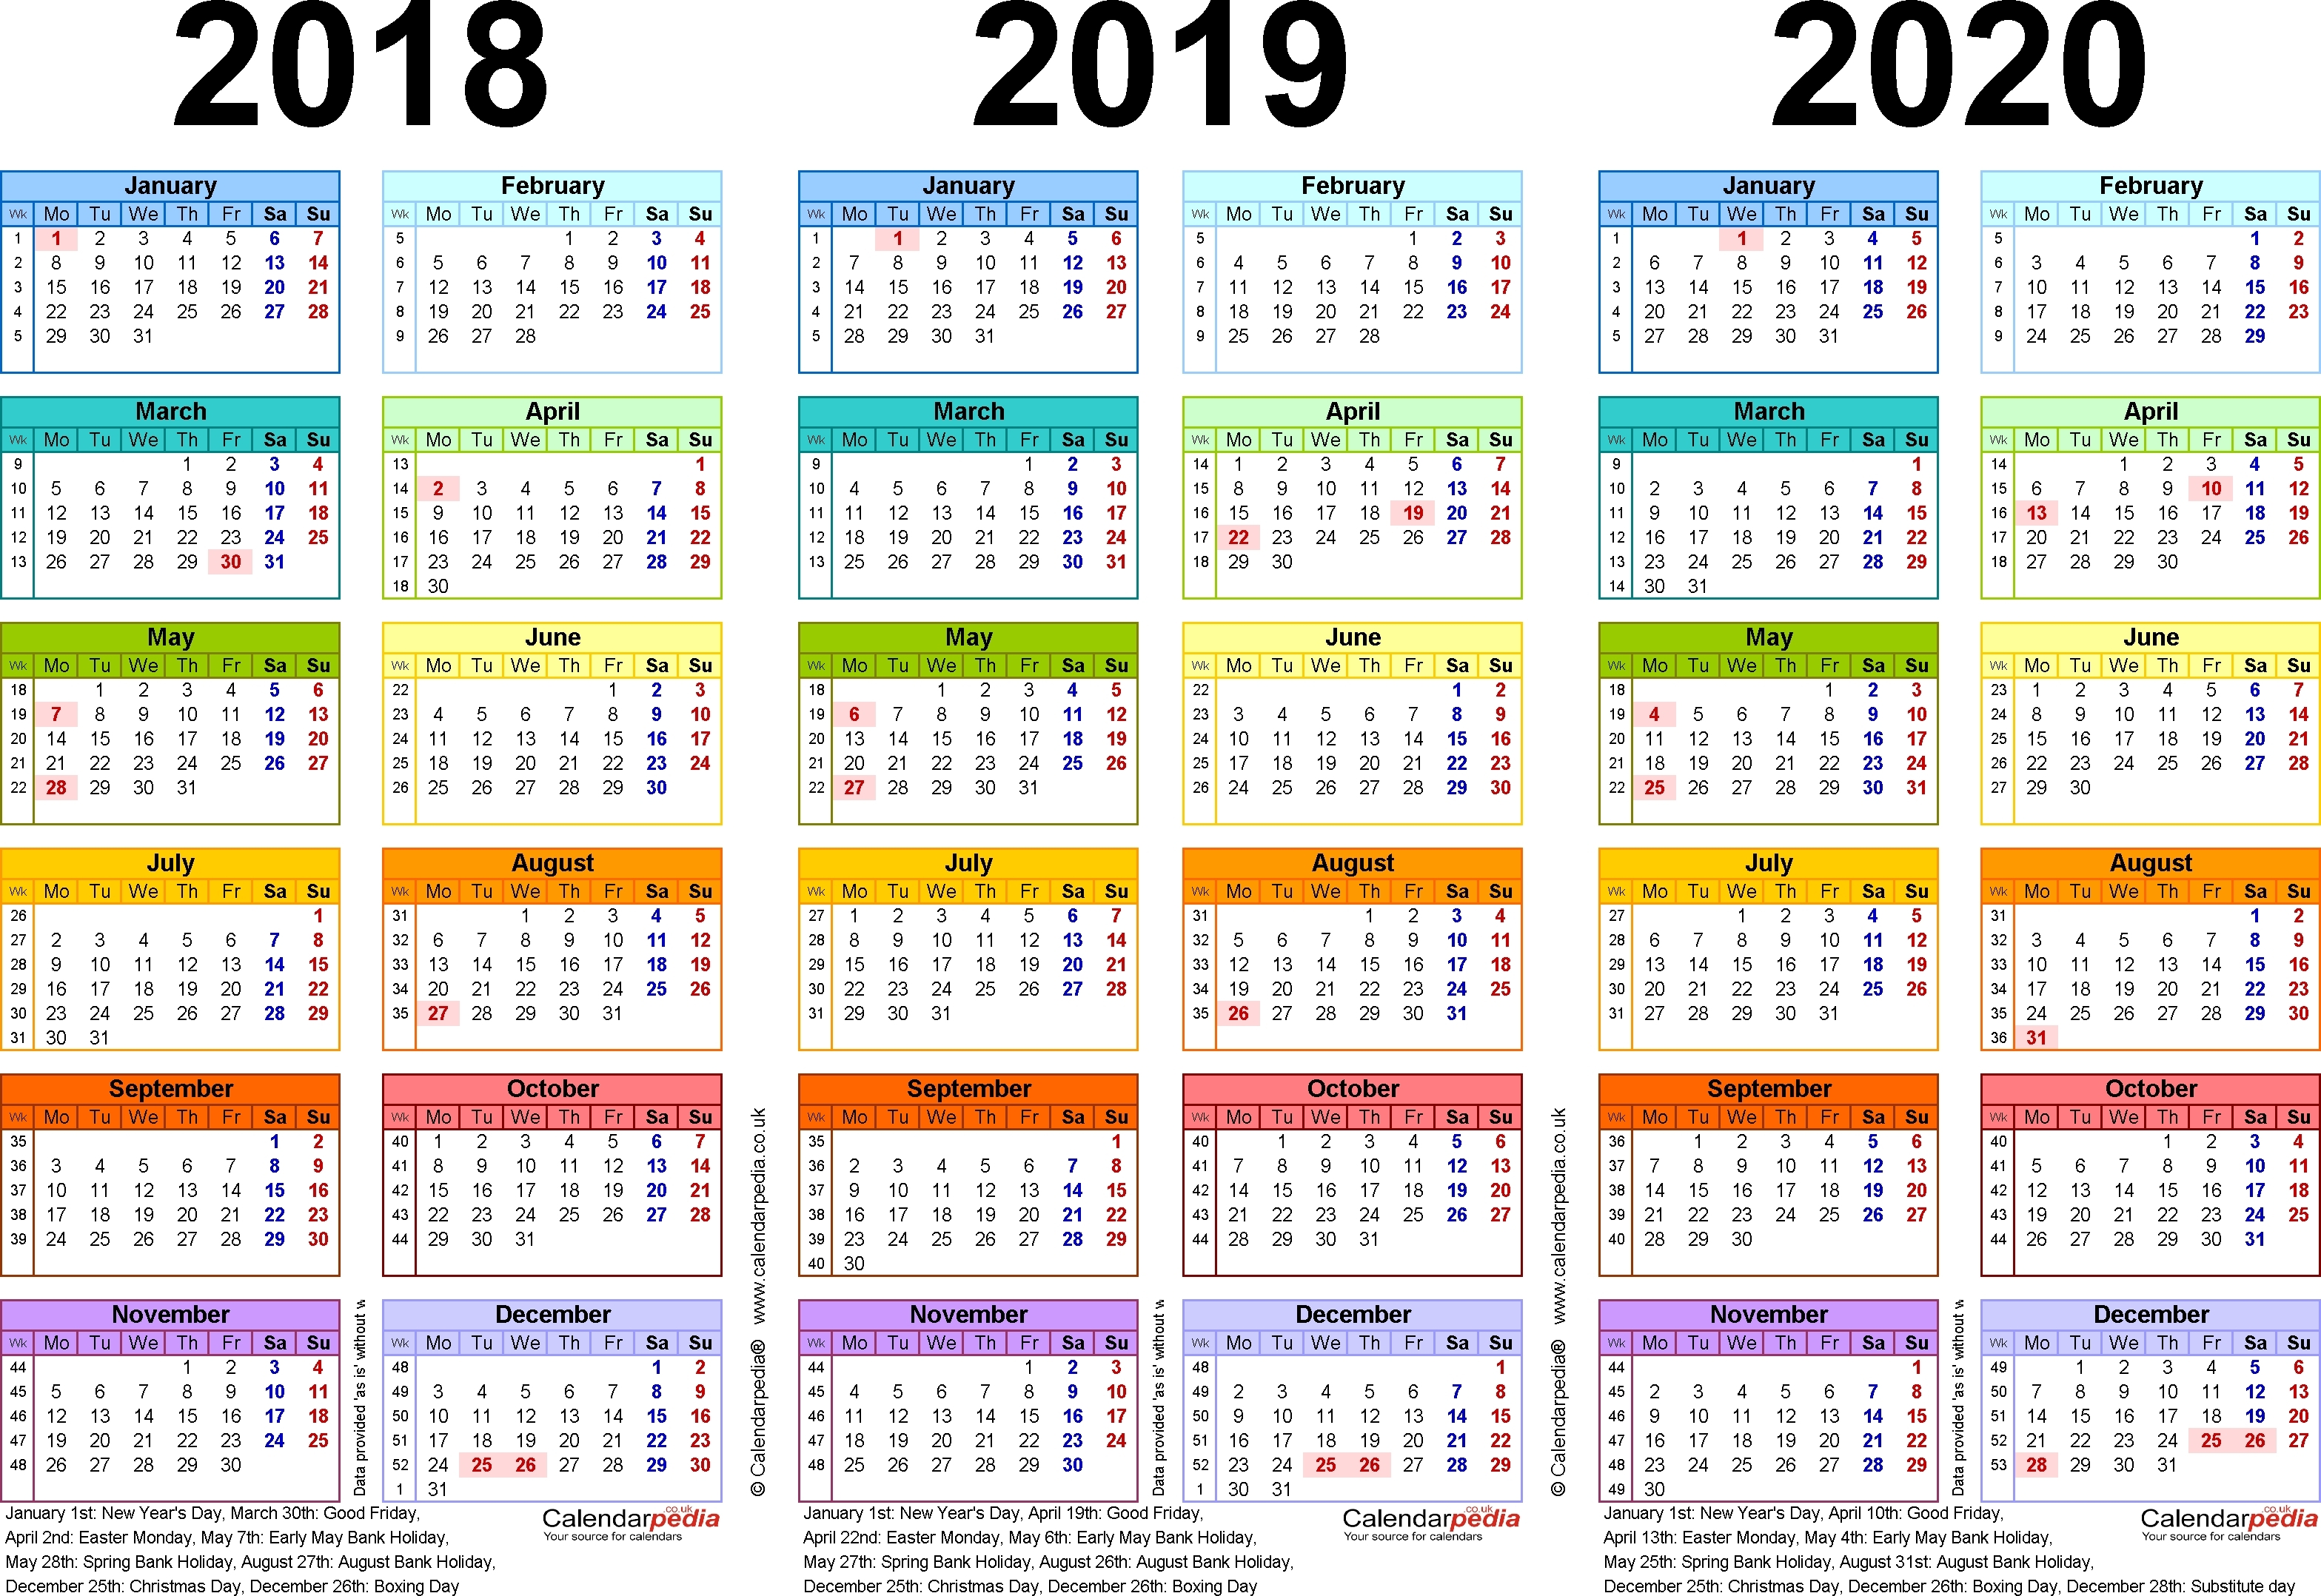 Exceptional 2020 Calendar South Africa • Printable Blank-2020 Calendar South Africa With Public Holidays